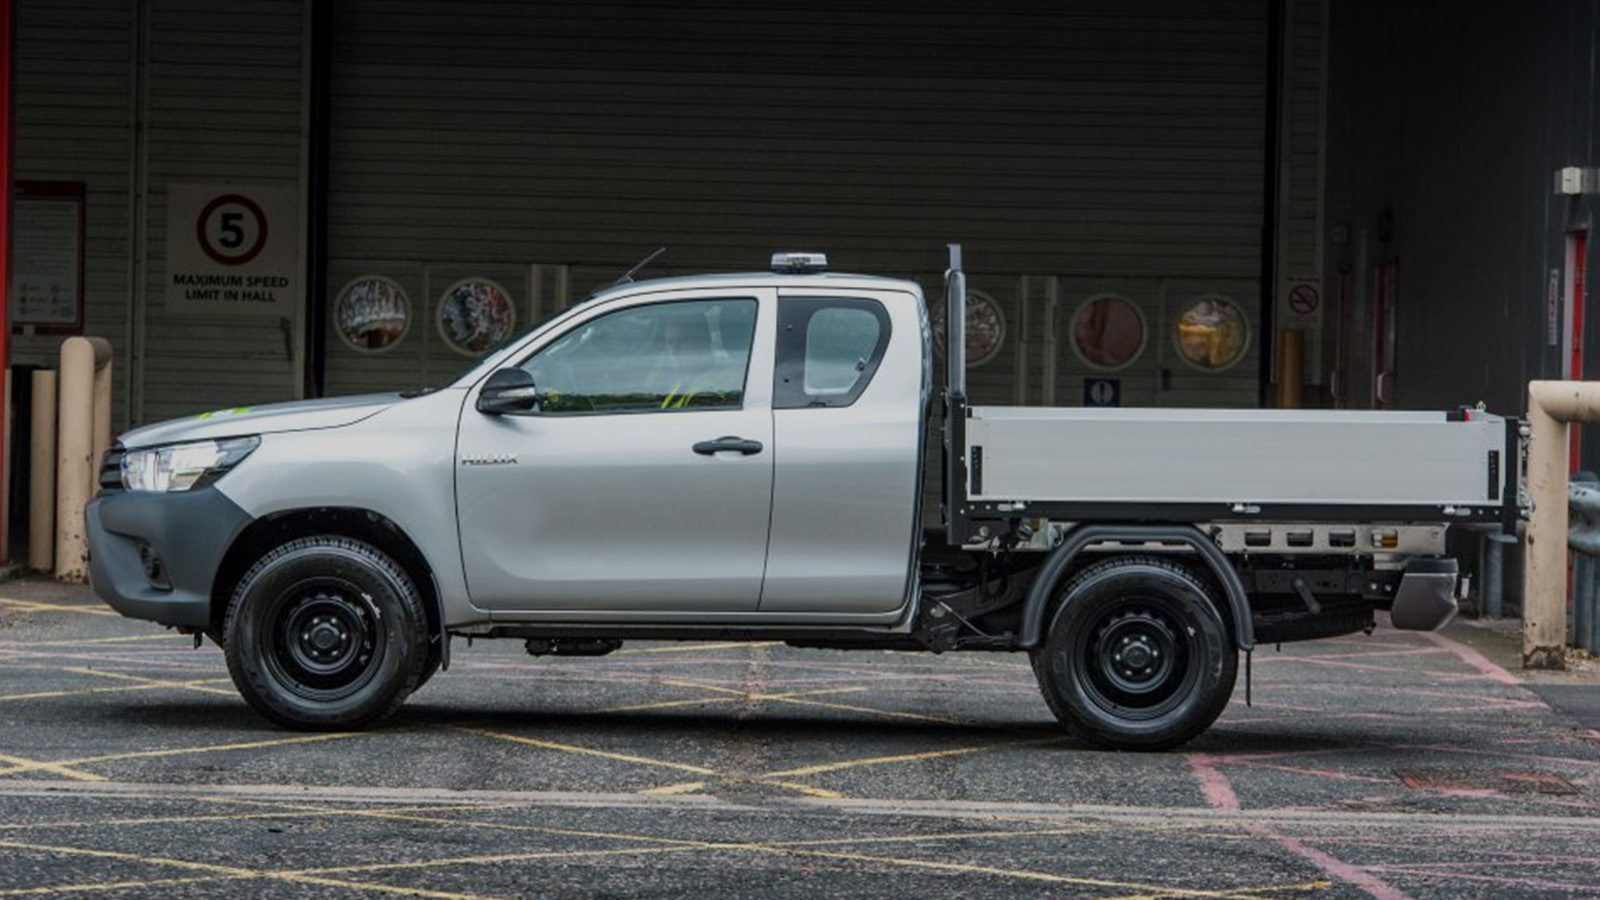 Hilux with standard conversion